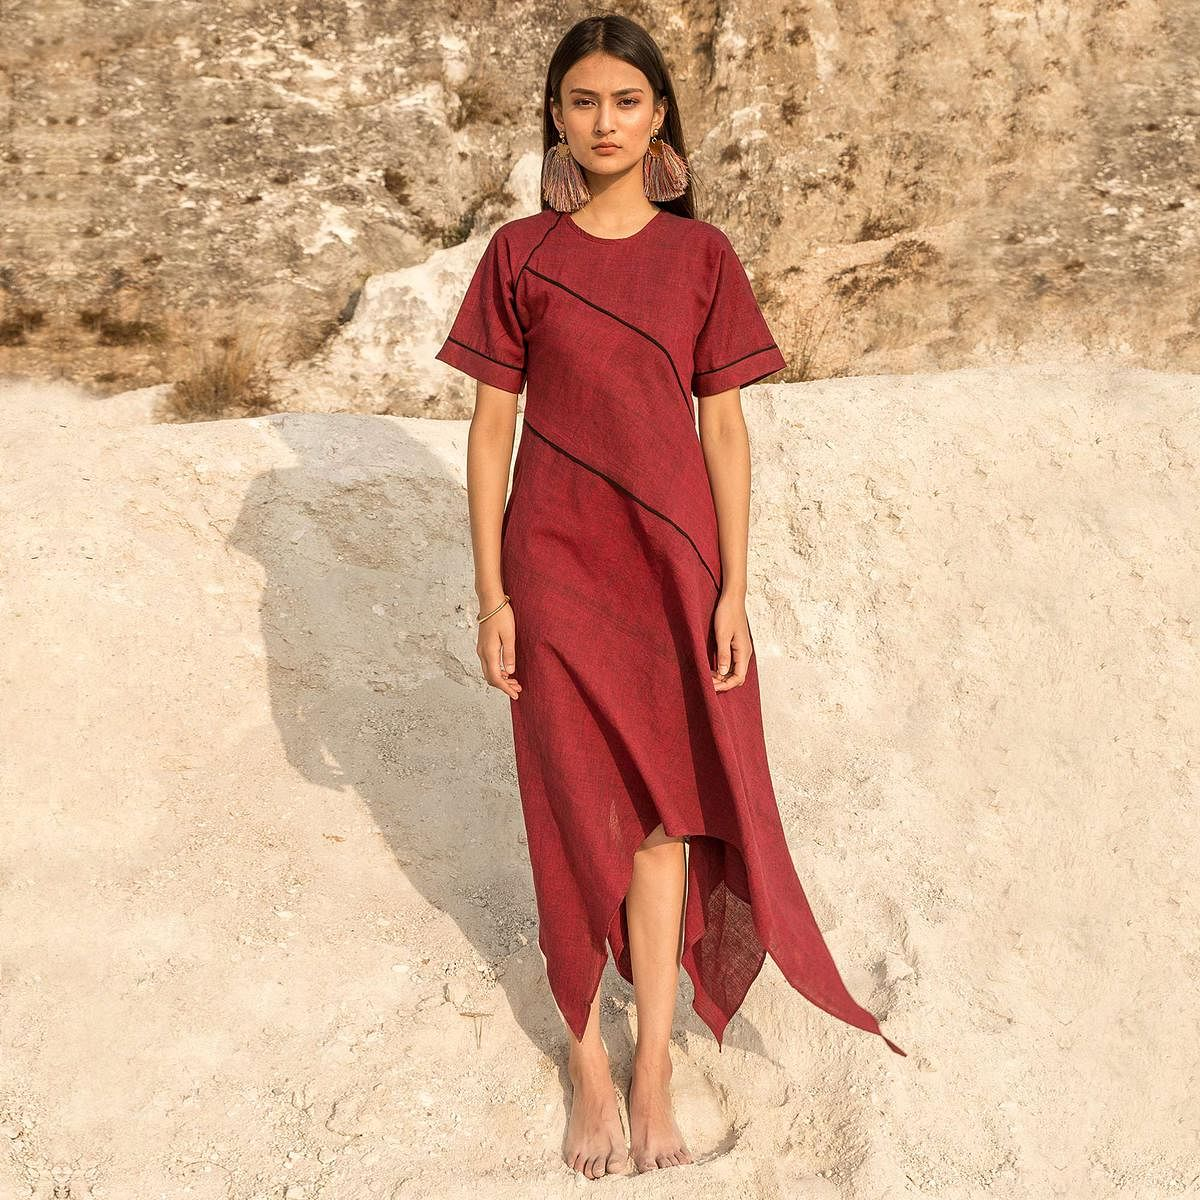 Excellent Maroon Colored Casual Wear Piping Cut & Sew Hand Woven Cotton Handkerchief Tunic